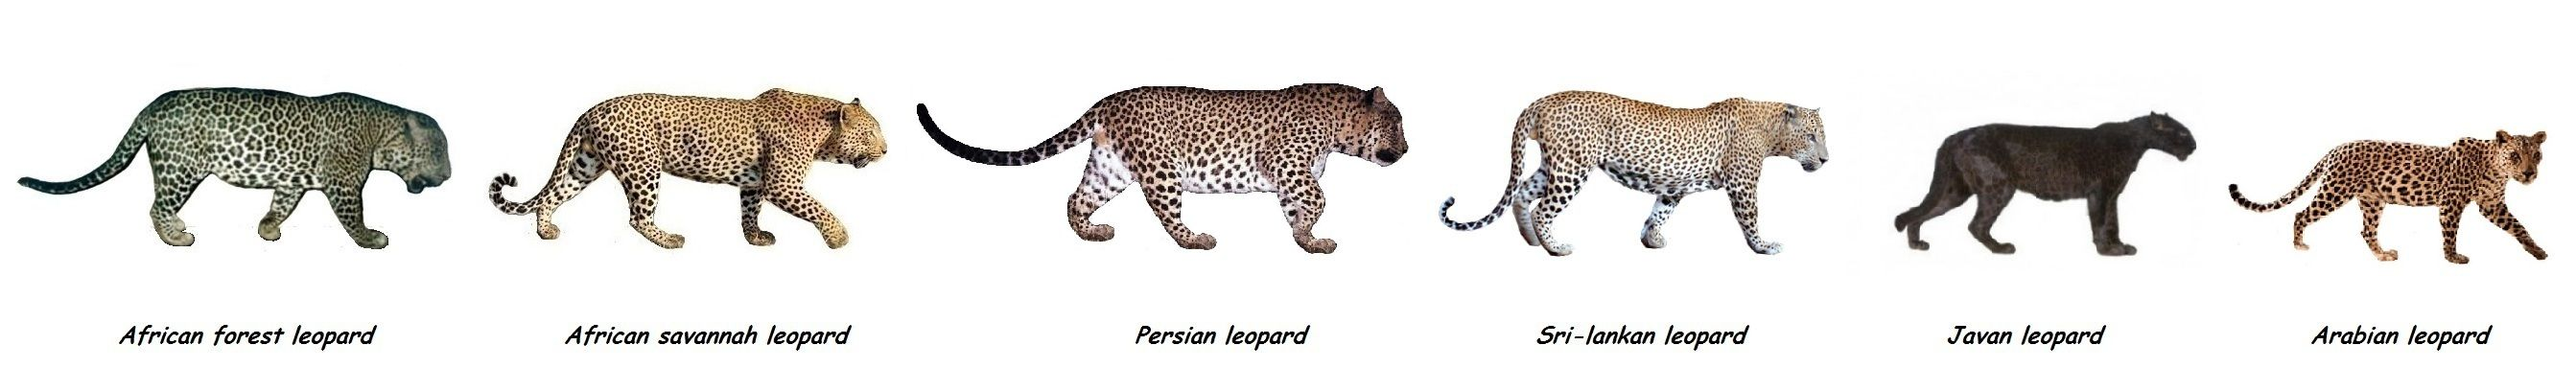 Big Cat Skull Differences